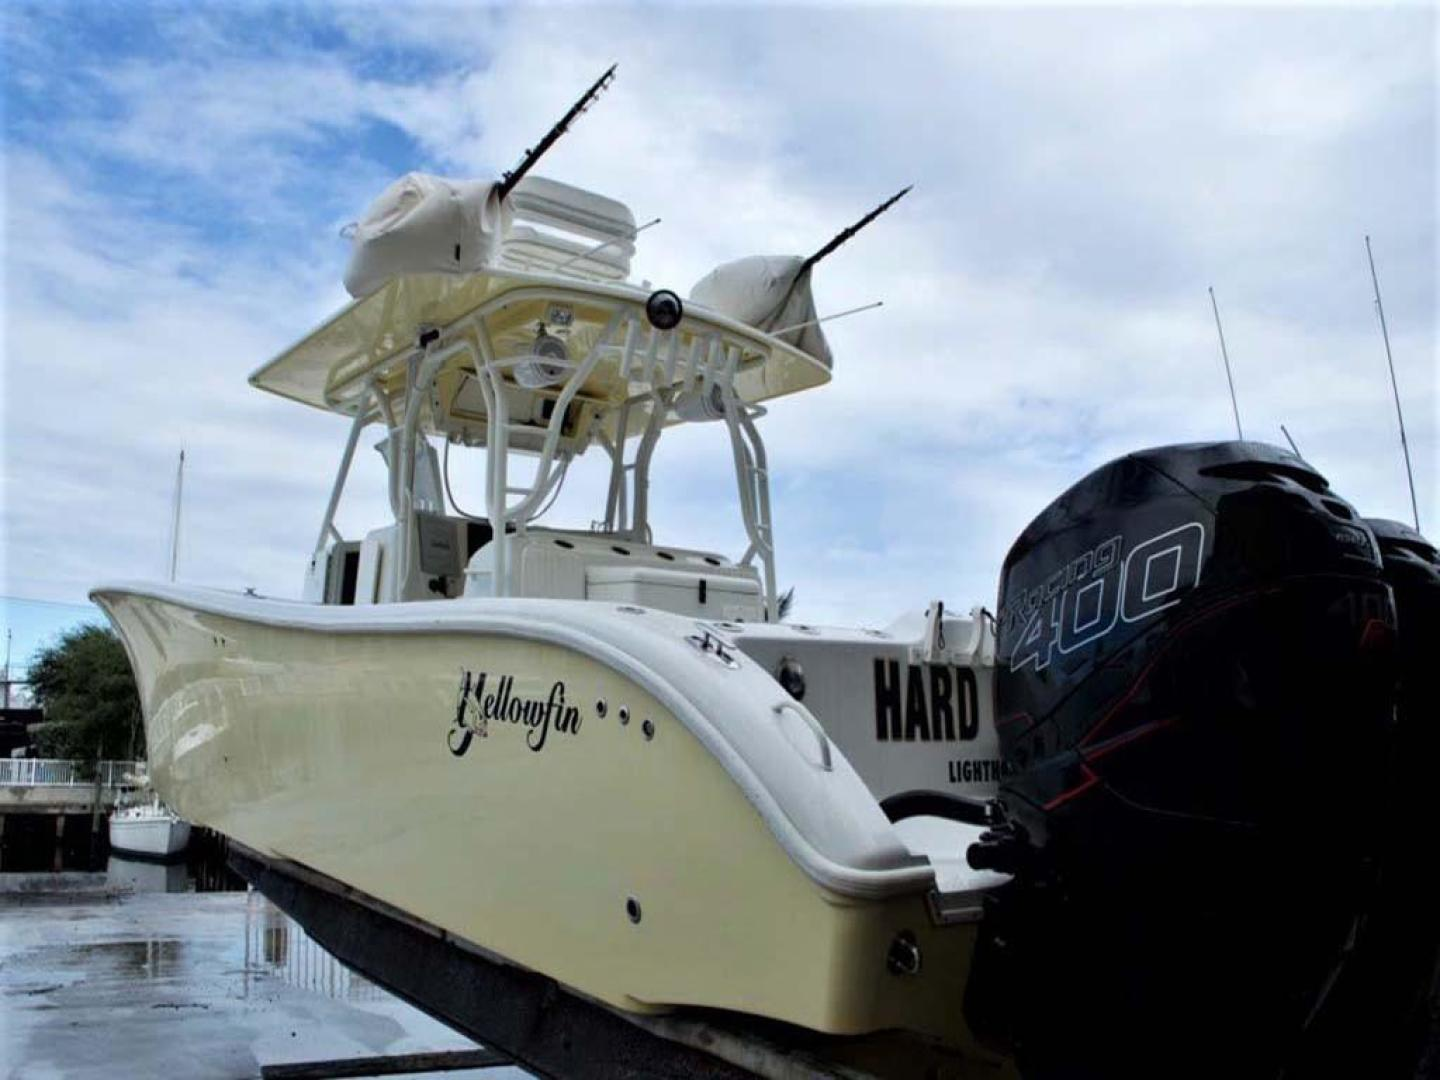 Yellowfin-42-Open-2009-Hard-Charger-Pompano-Florida-United-States-Port-929745